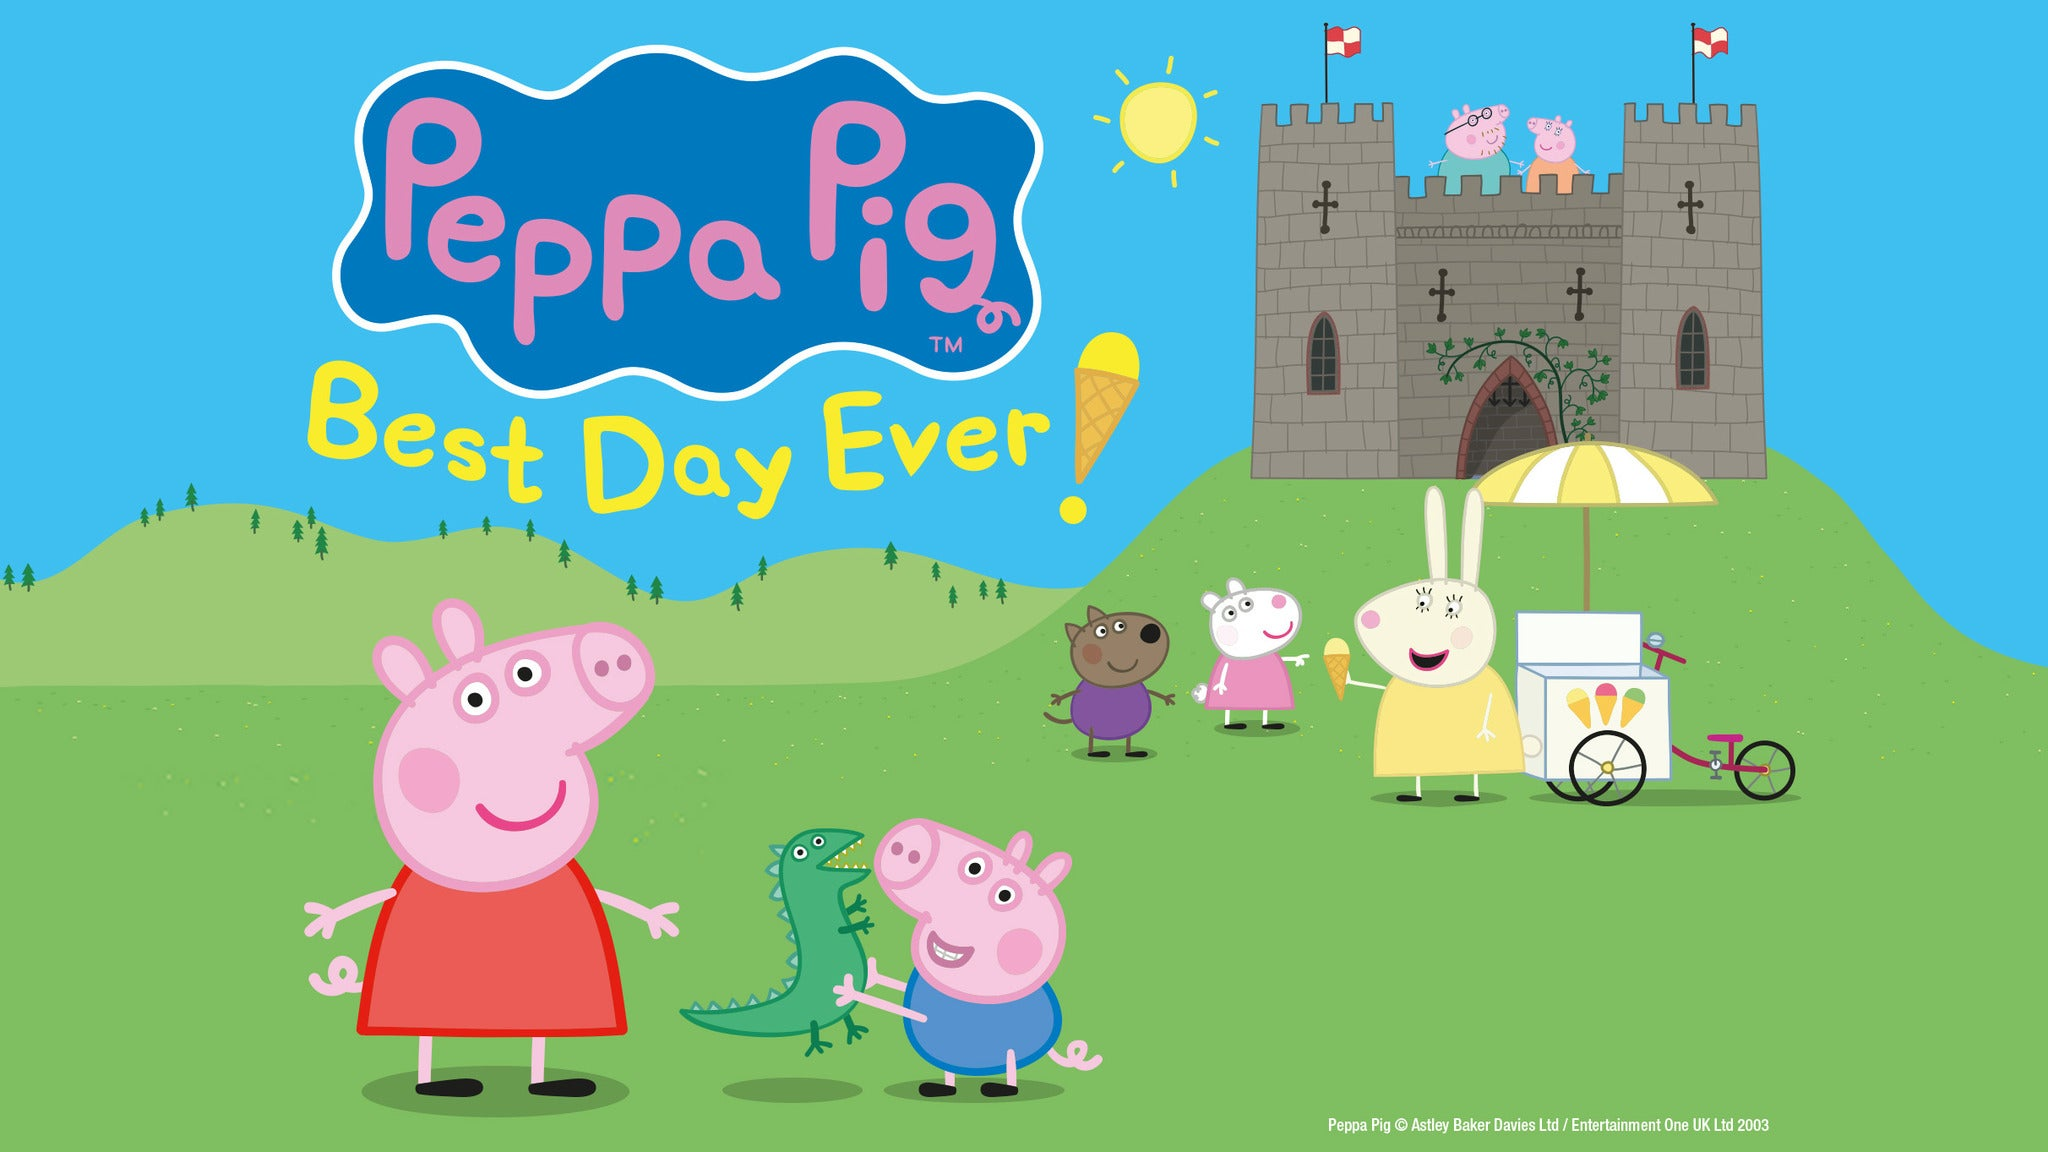 Peppa Pig Live! at Robinson Performance Hall